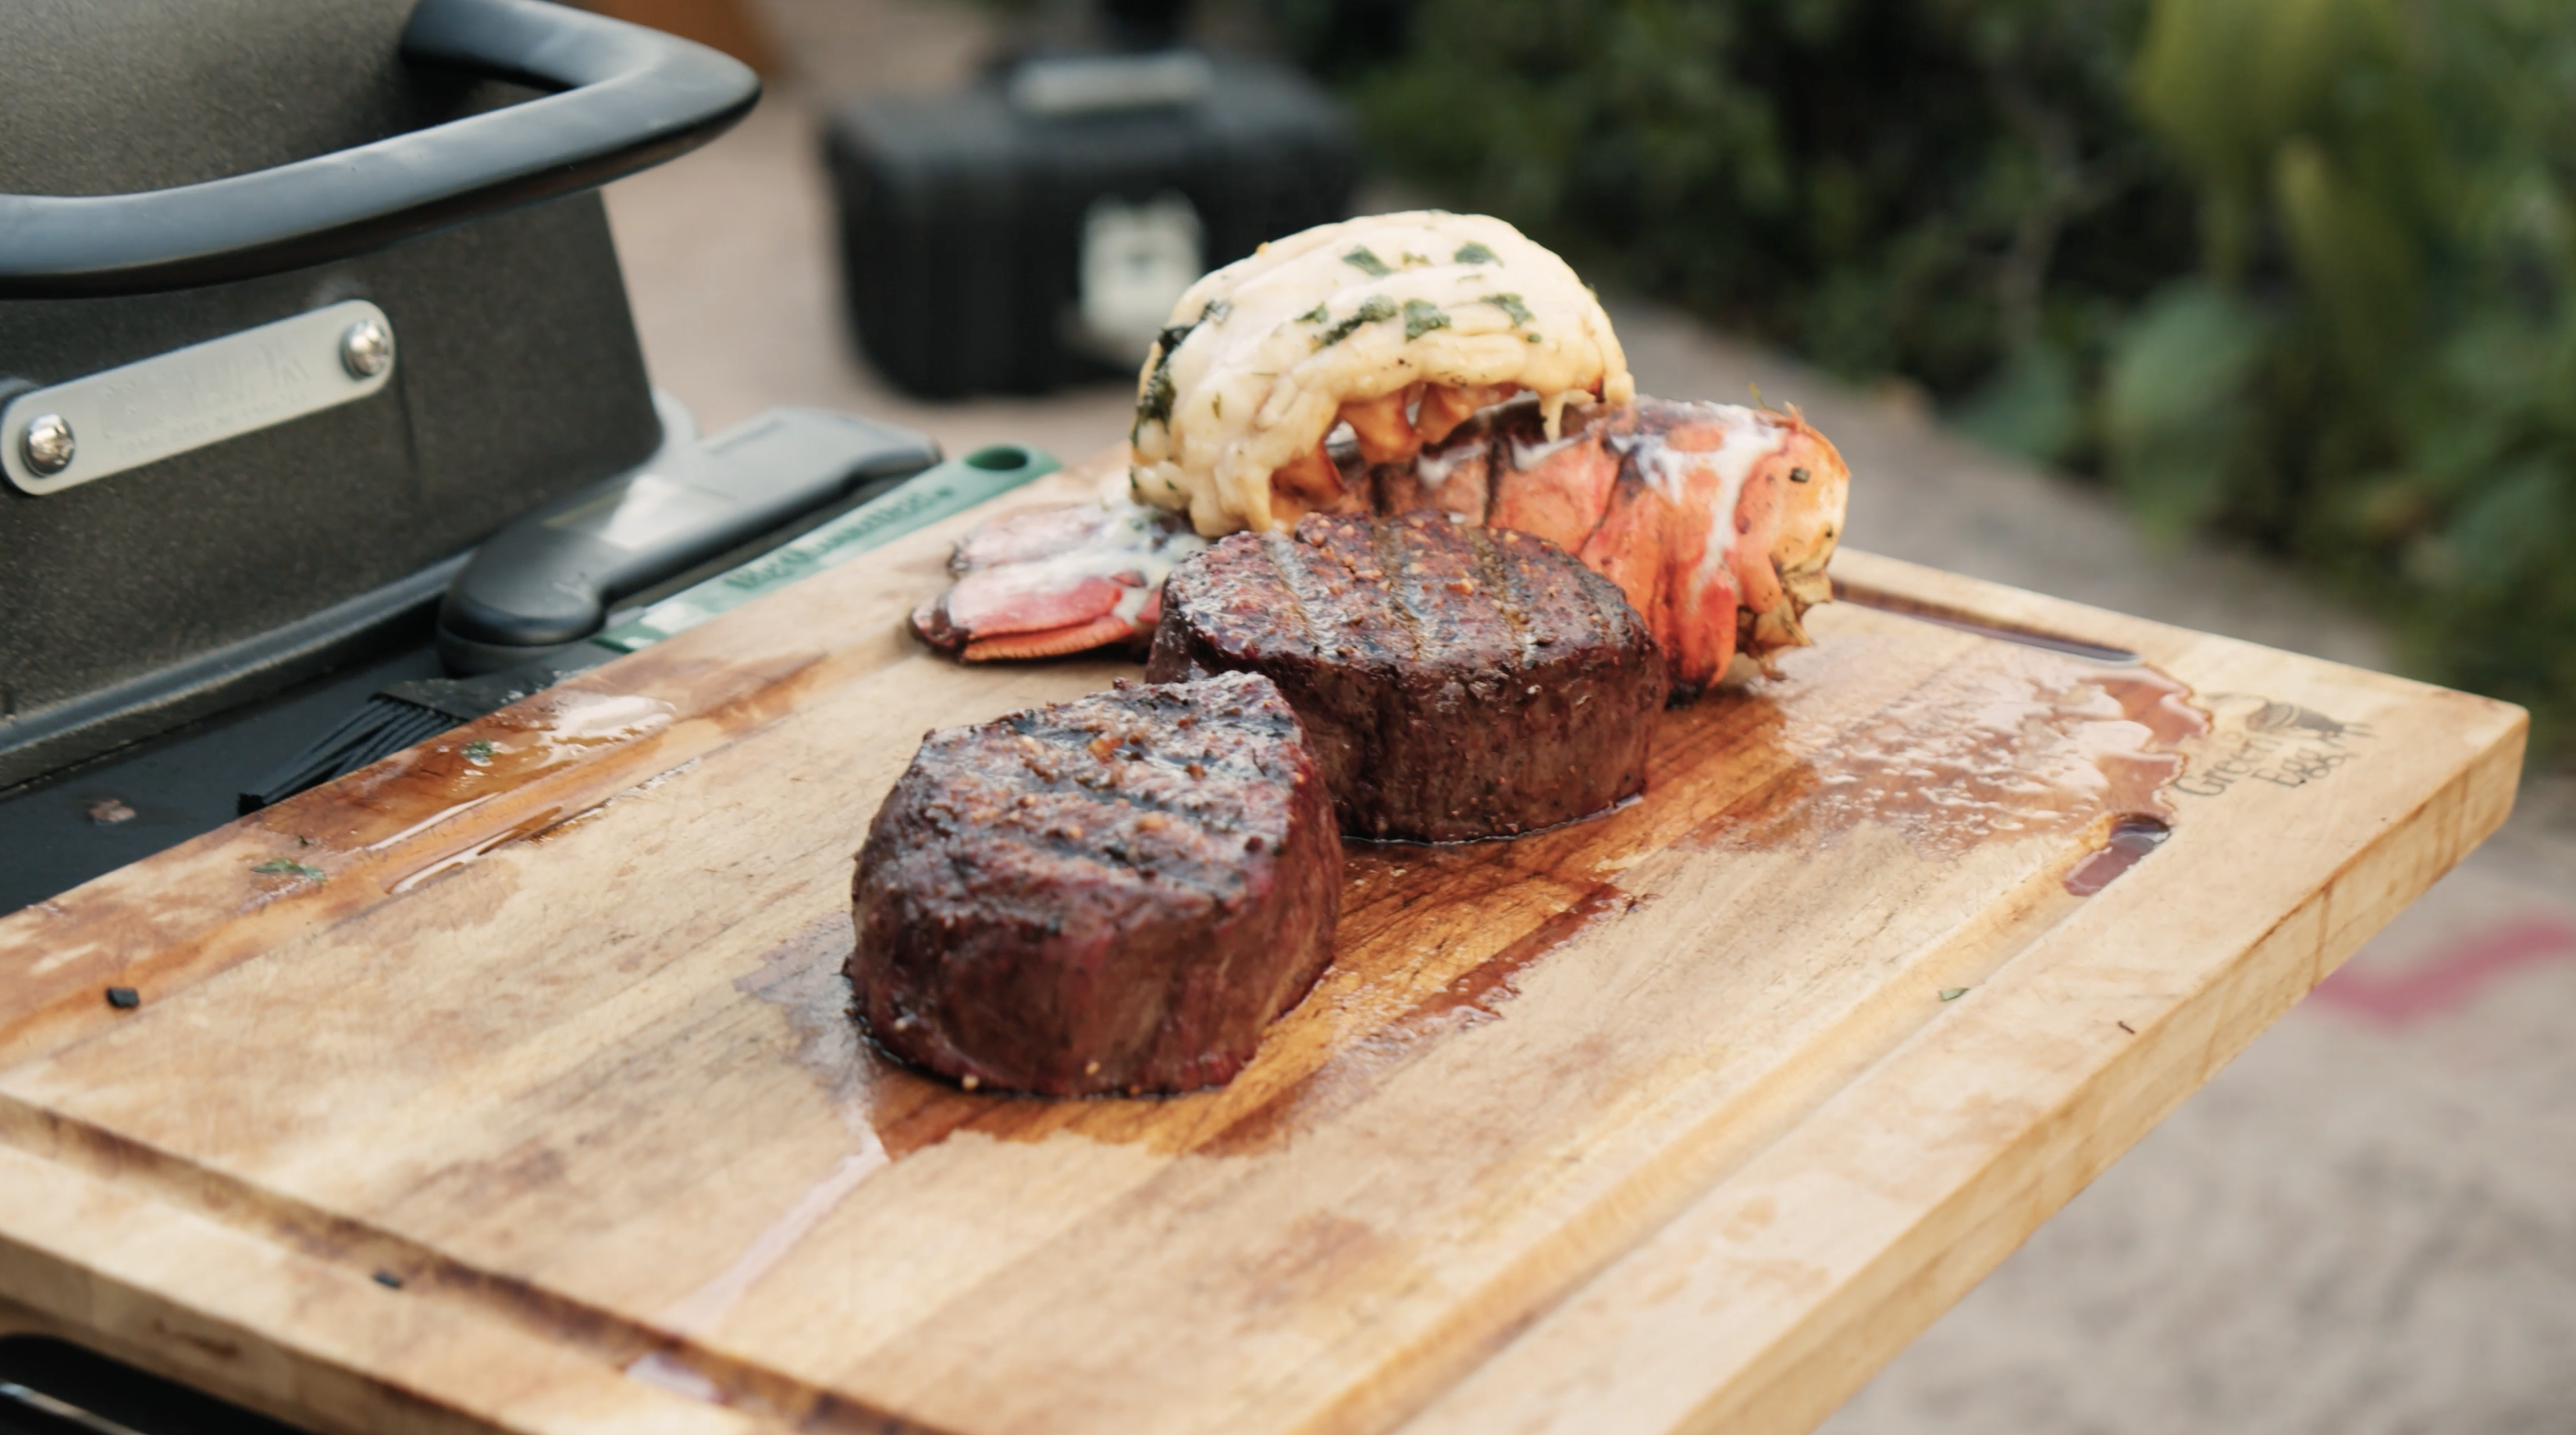 Filet Mignon with lobster tail on cutting board